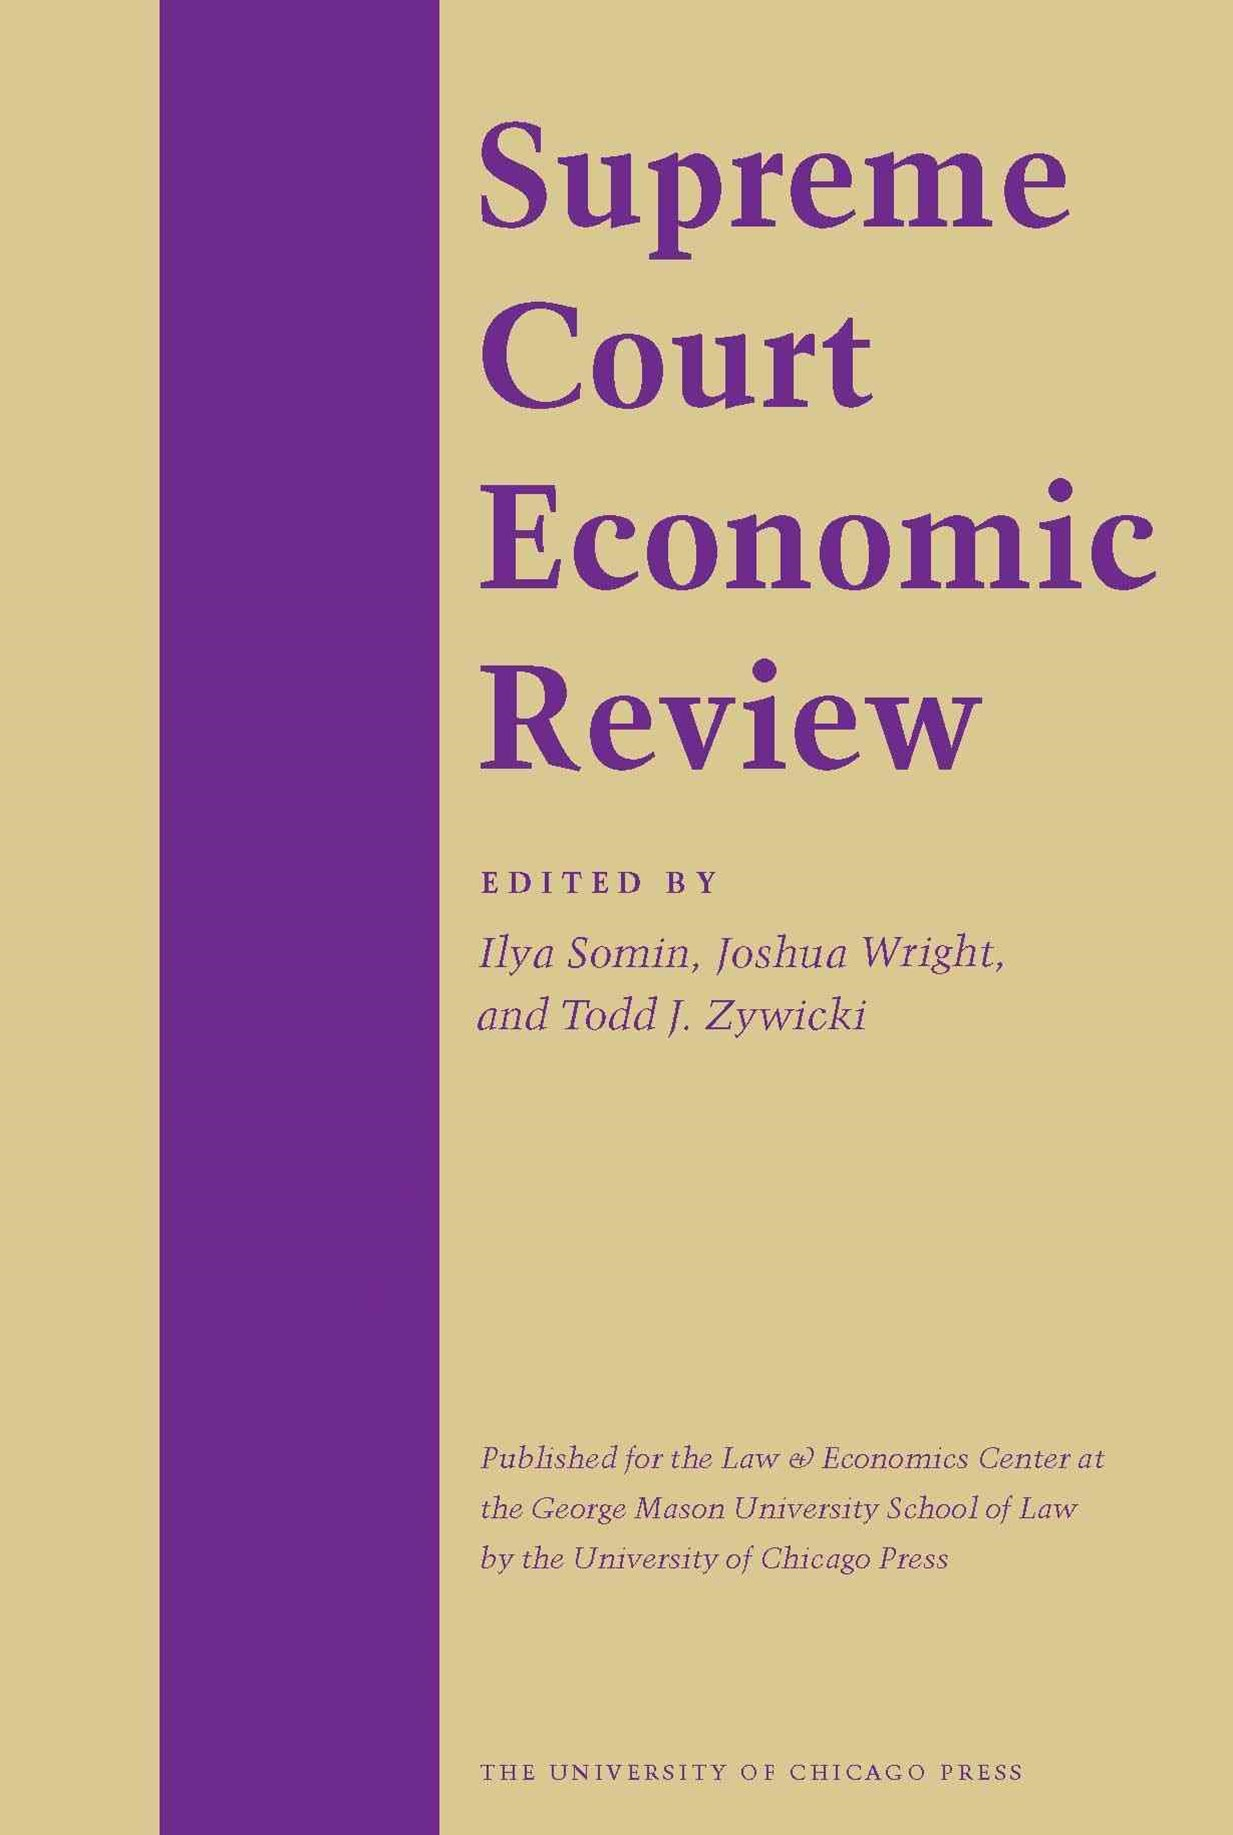 The Supreme Court Economic Review